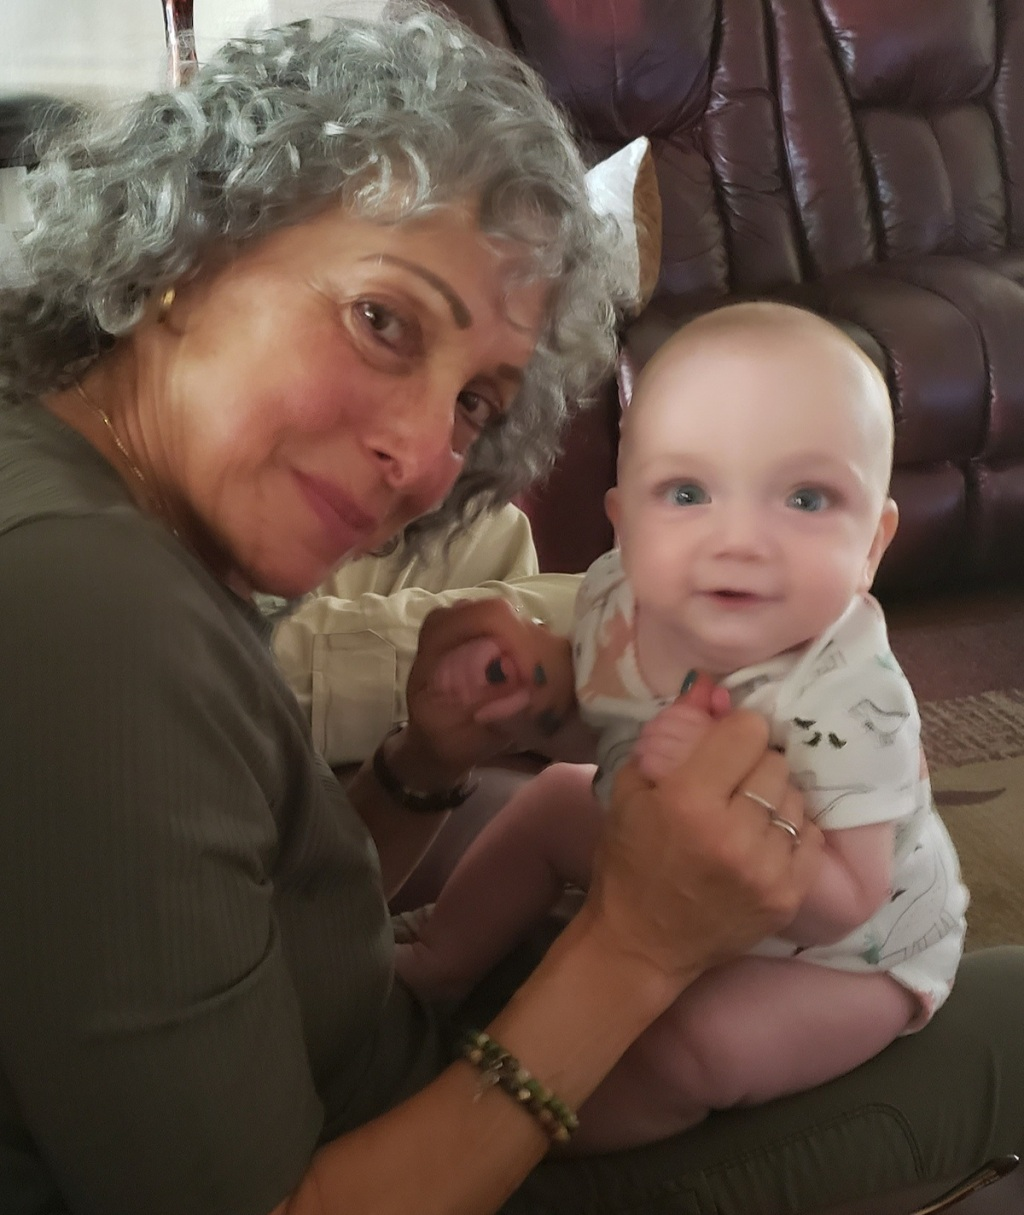 woman with baby on lap sitting on couch looking at camera